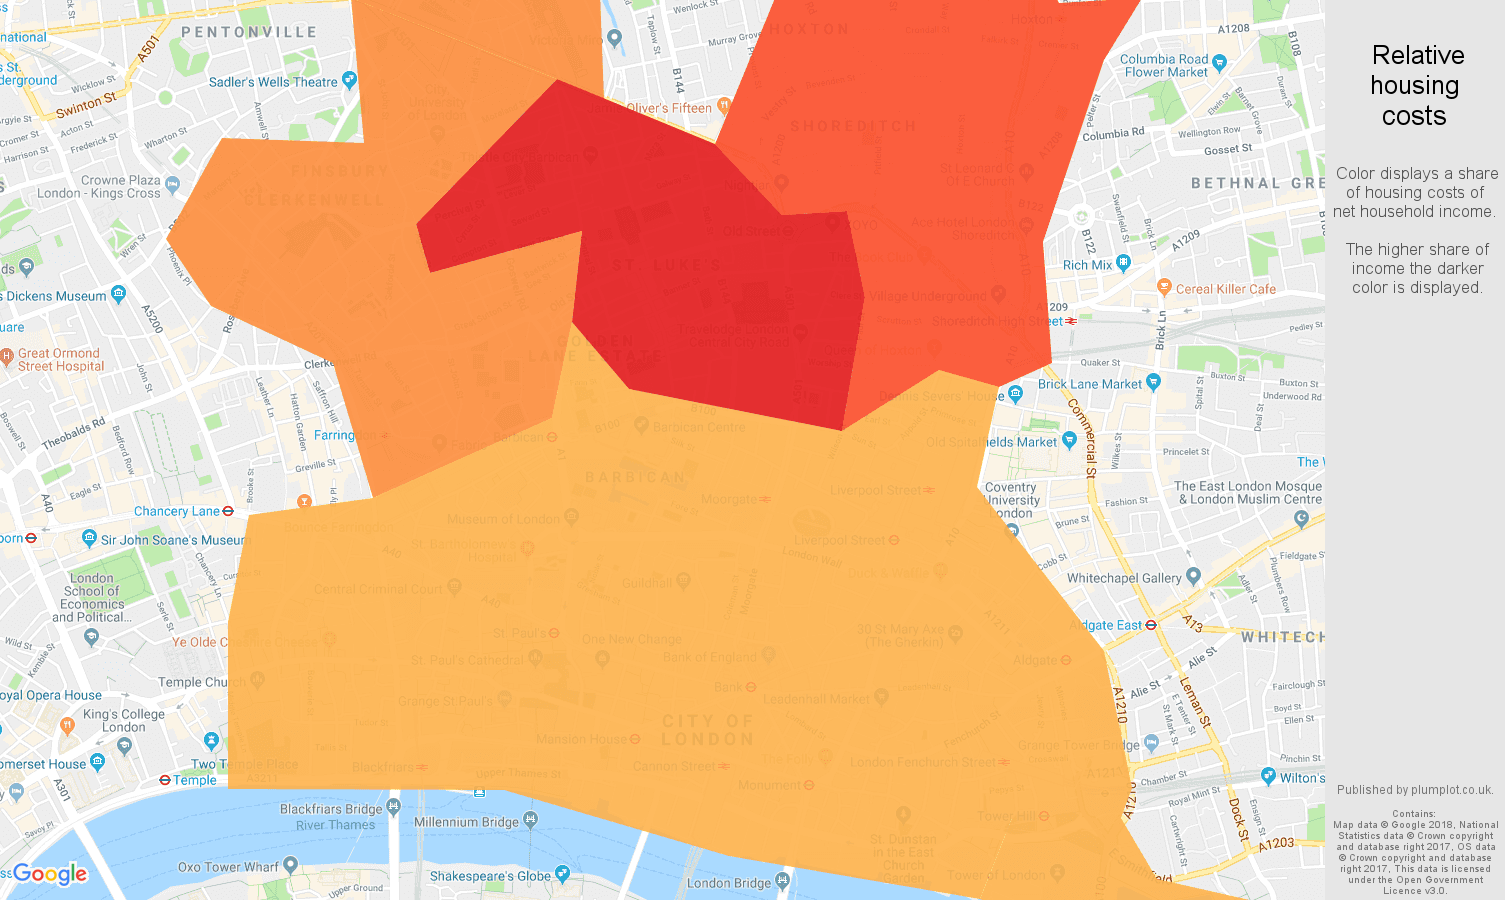 East Central London relative housing costs map